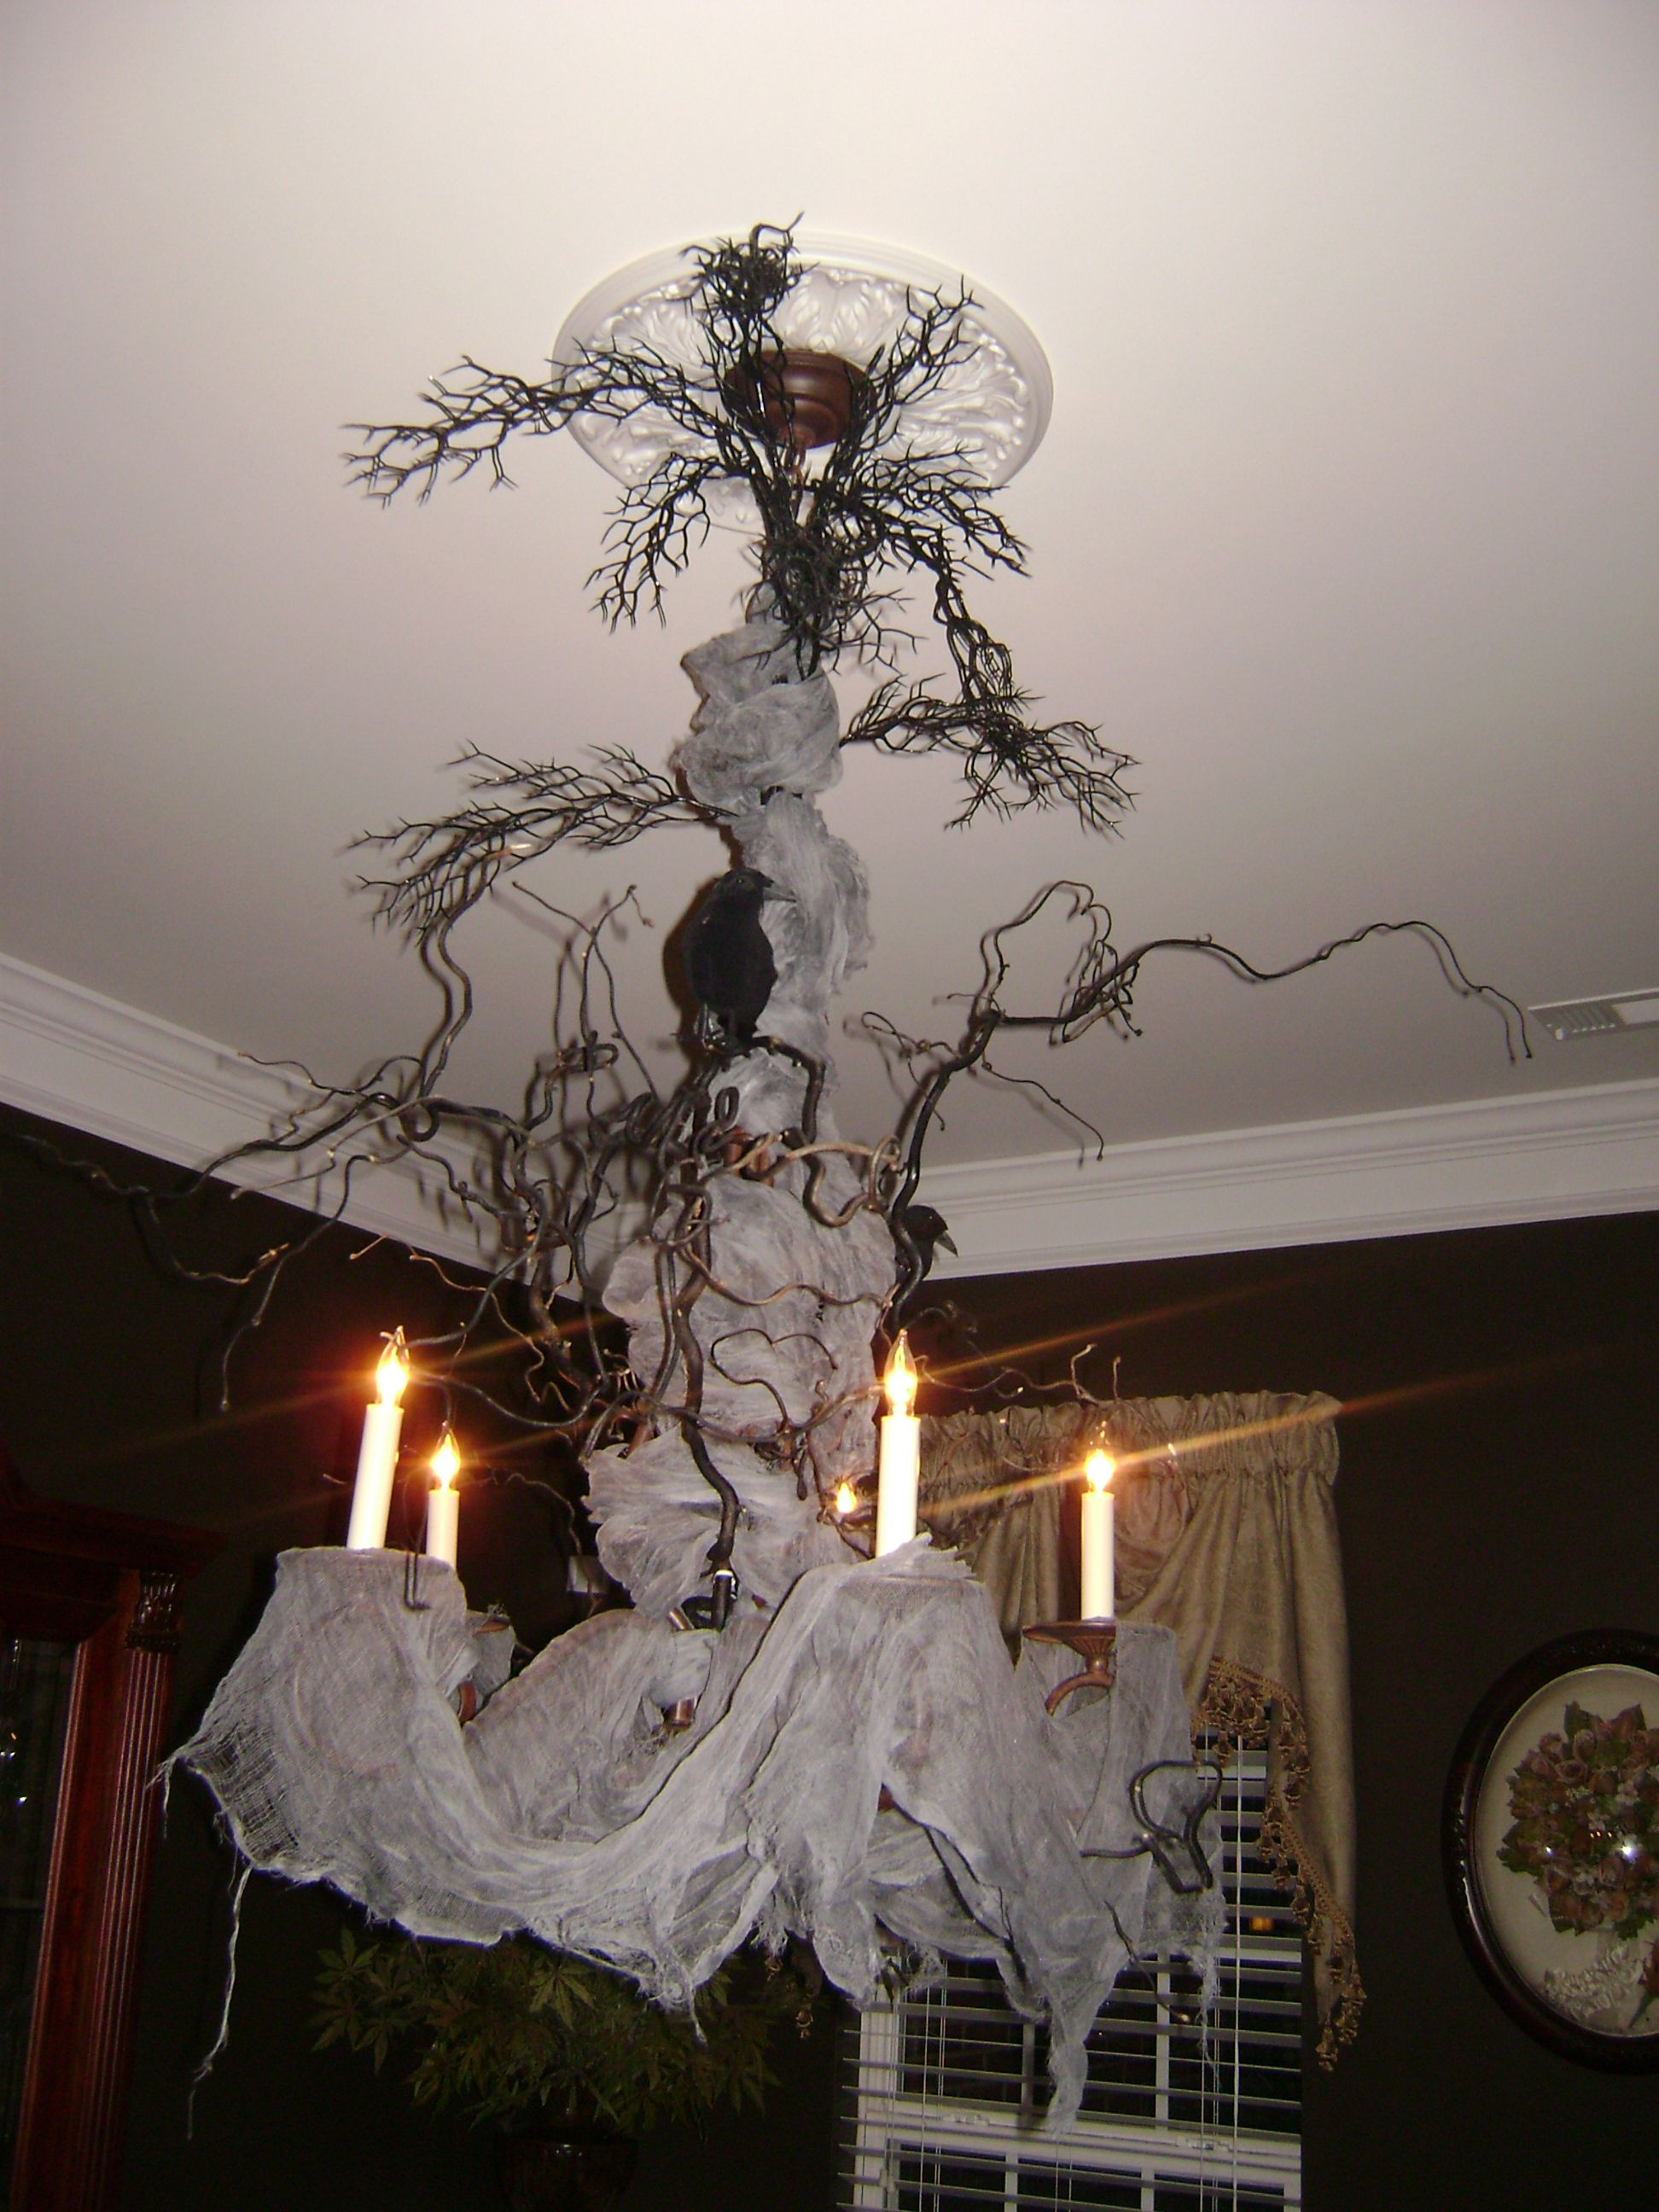 Cool Chandelier Ideas Creepy Halloween Chandelier Very Cool Cheesecloth Dried